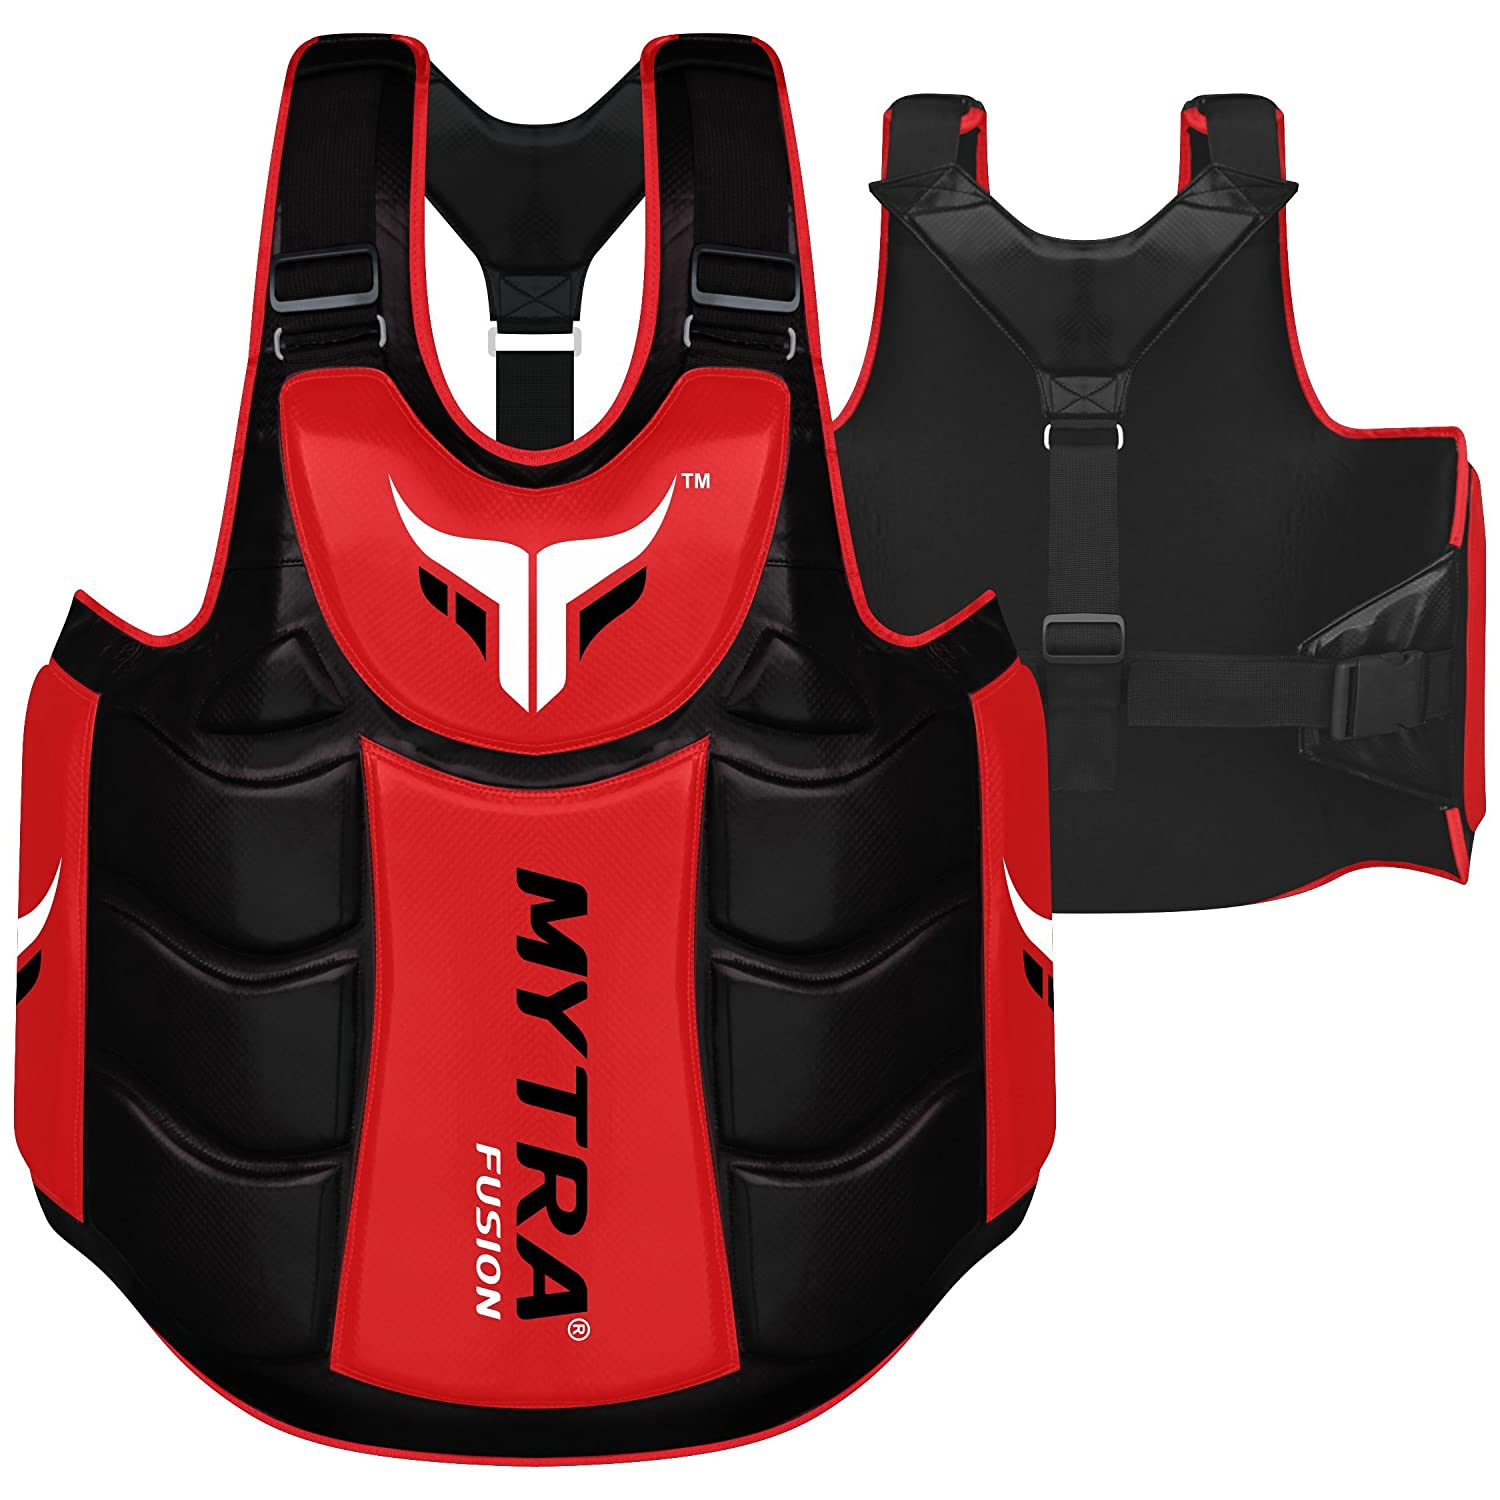 Mytra Fusion Chest /& Belly Protector Body Shield Body Armor Body Pad Body Protector Chest Ribs and Belly Protector for Boxing MMA Muay Thai Fitness Gym Workout